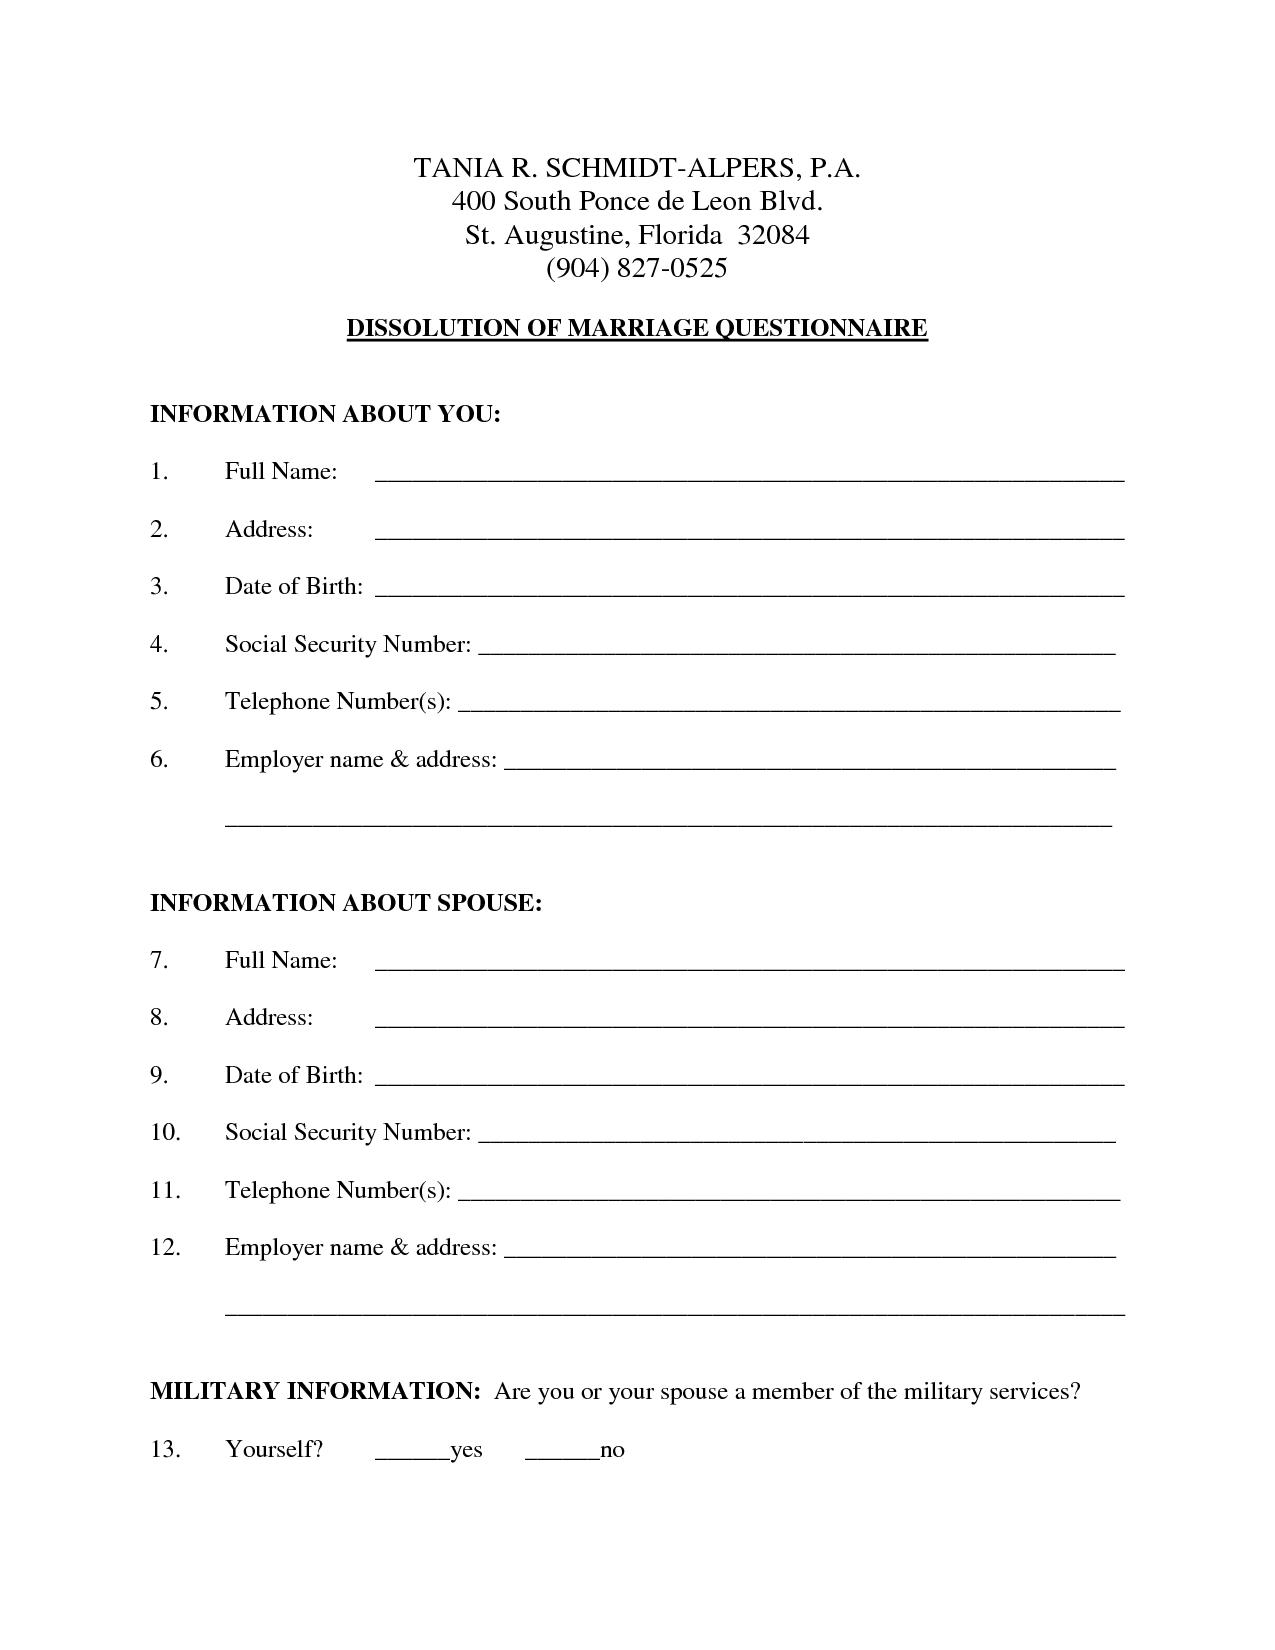 Fake Divorce Papers Template